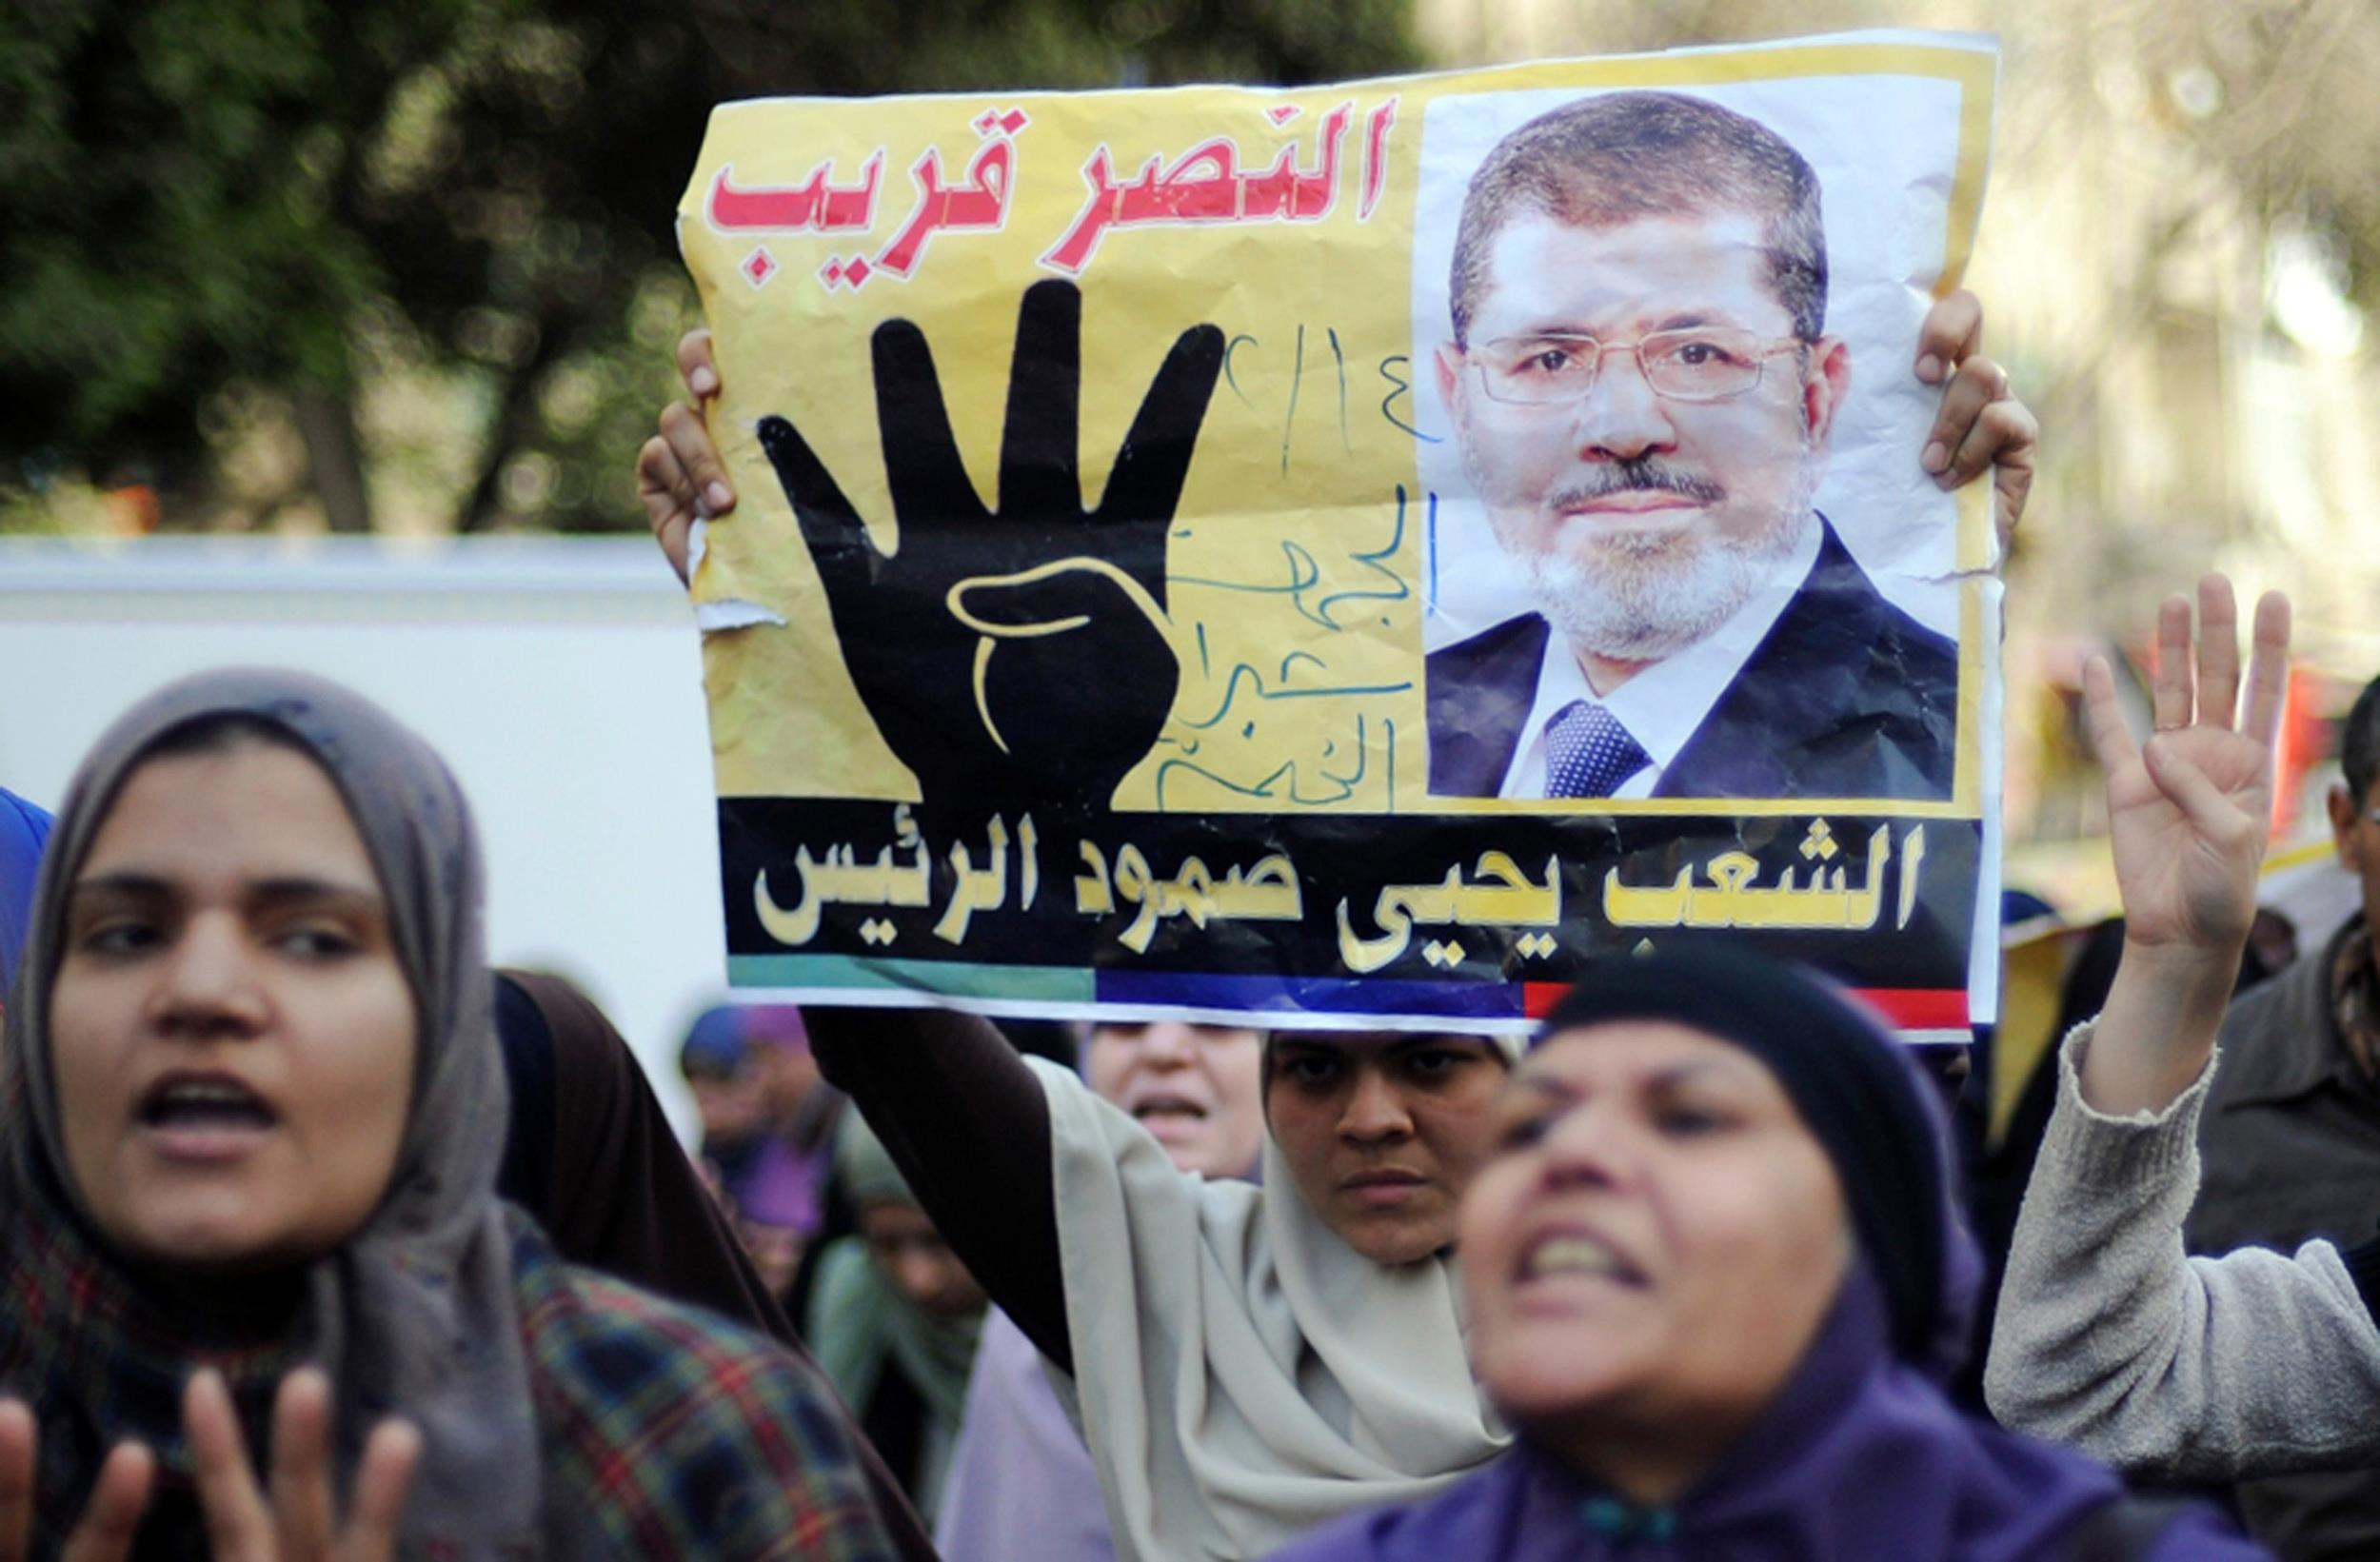 Muslim Brotherhood supporters at a protest in February 2014